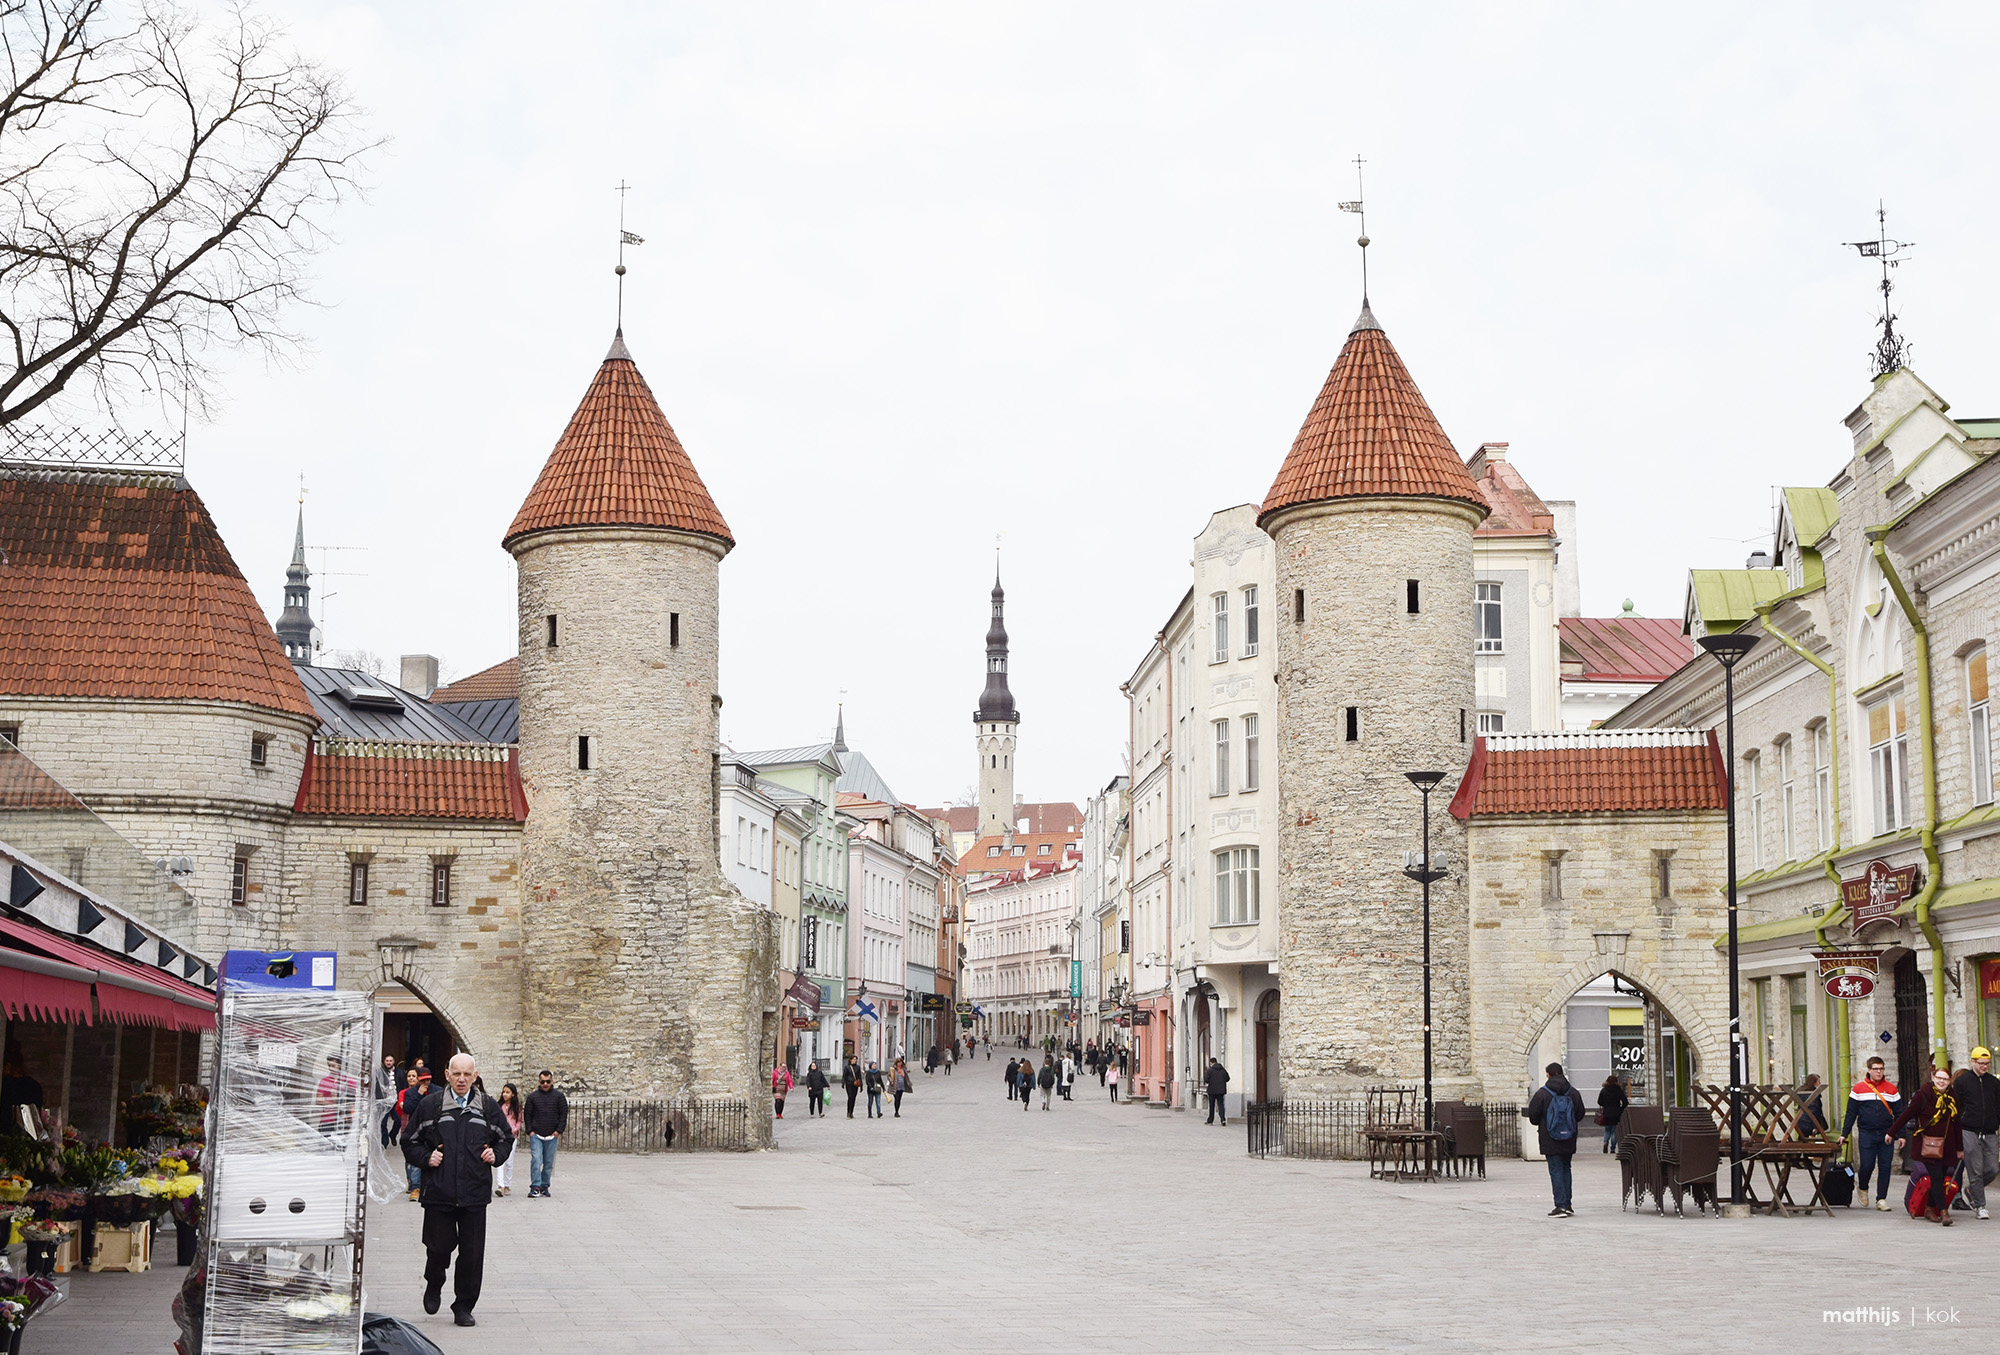 Viru Gate, Tallinn, Estonia| Photo by Matthijs Kok